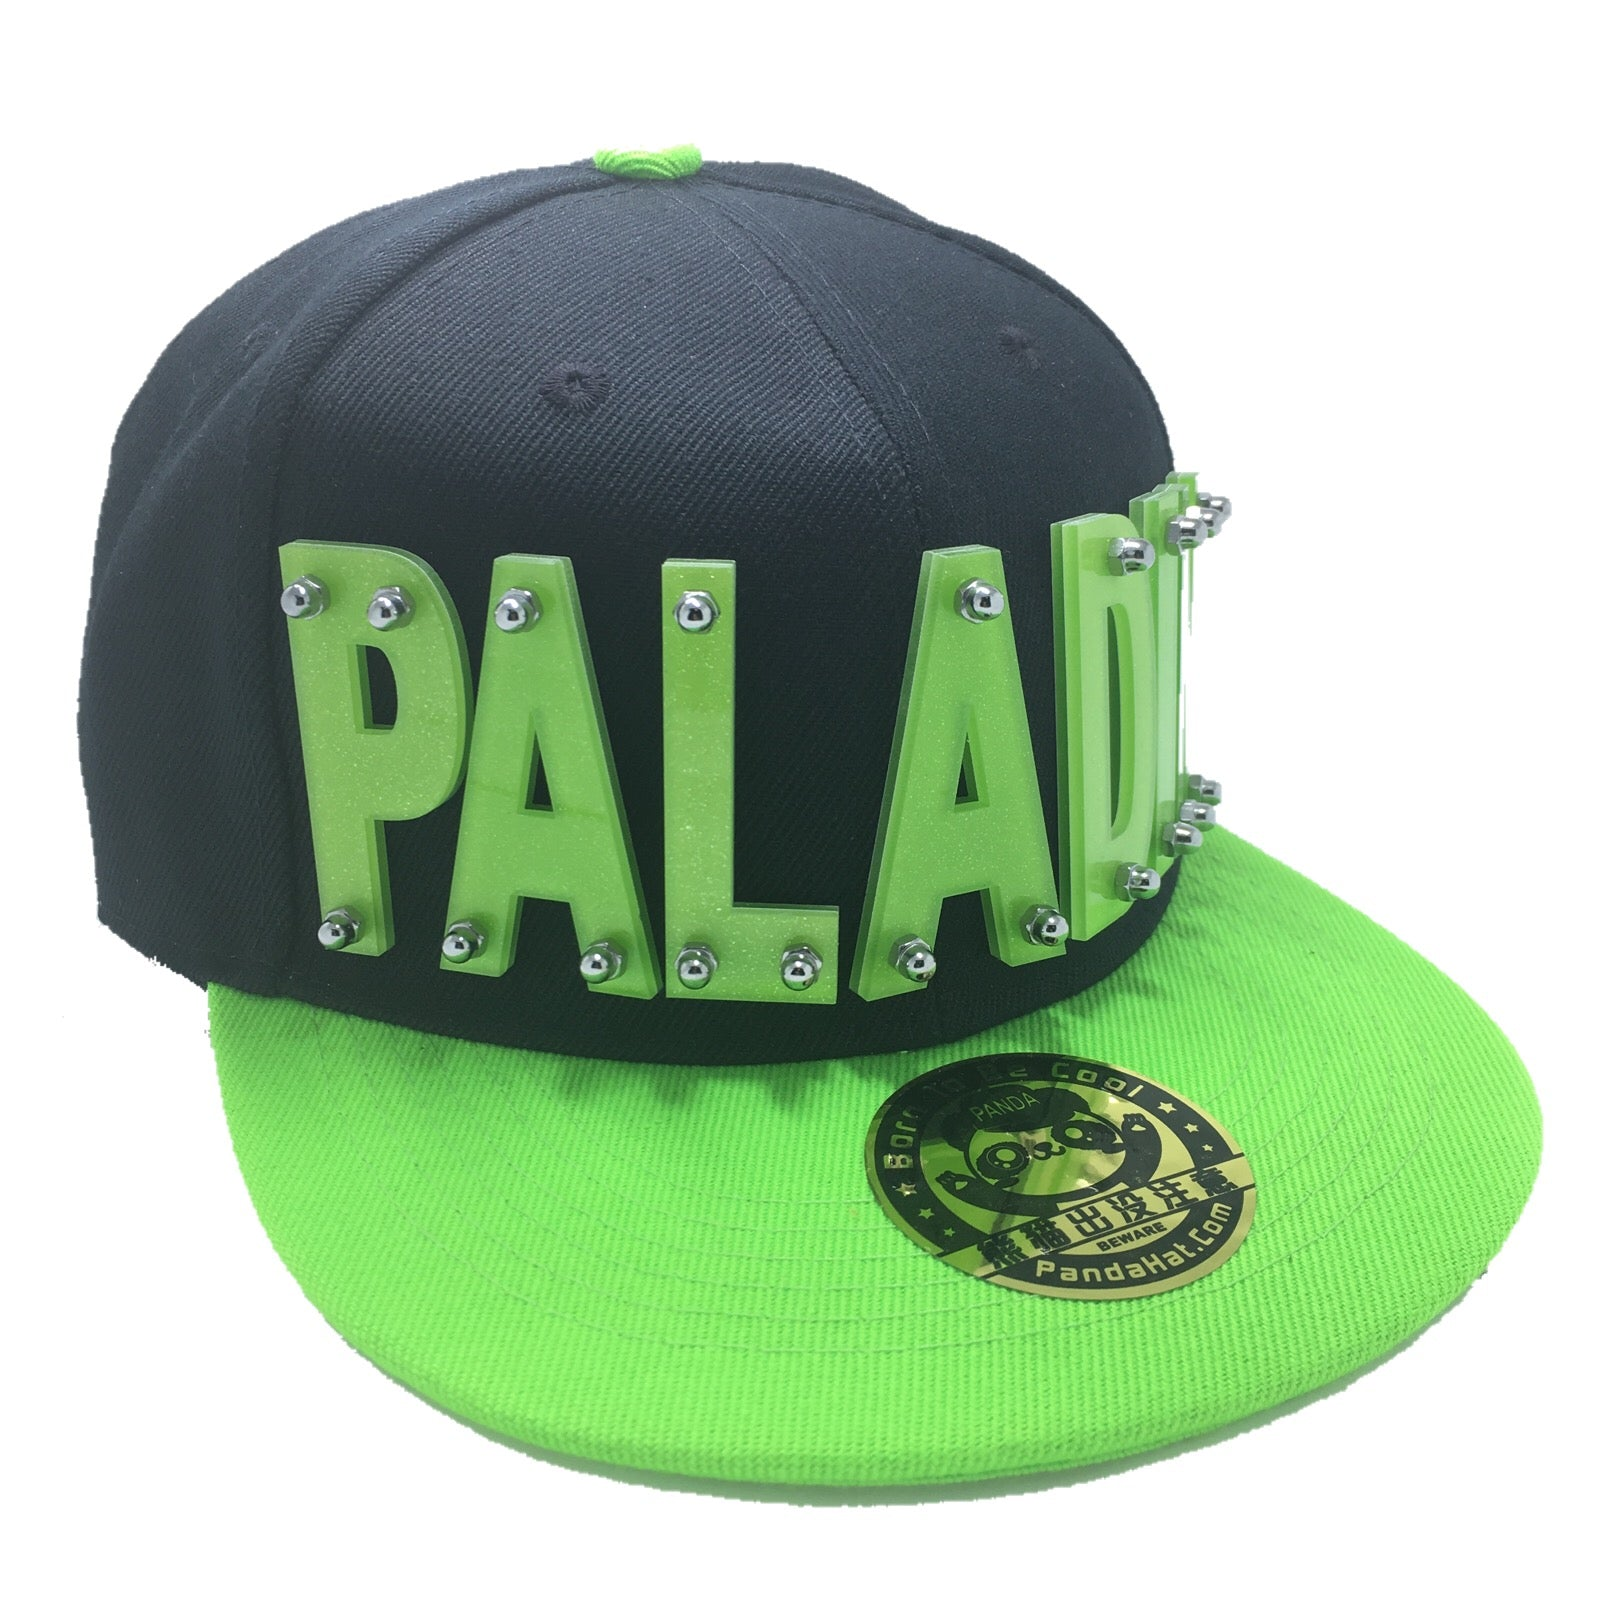 paladin hat green · PALADIN VOLTRON HAT IN BLACK WITH GREEN BRIM ... 85754f72a6b